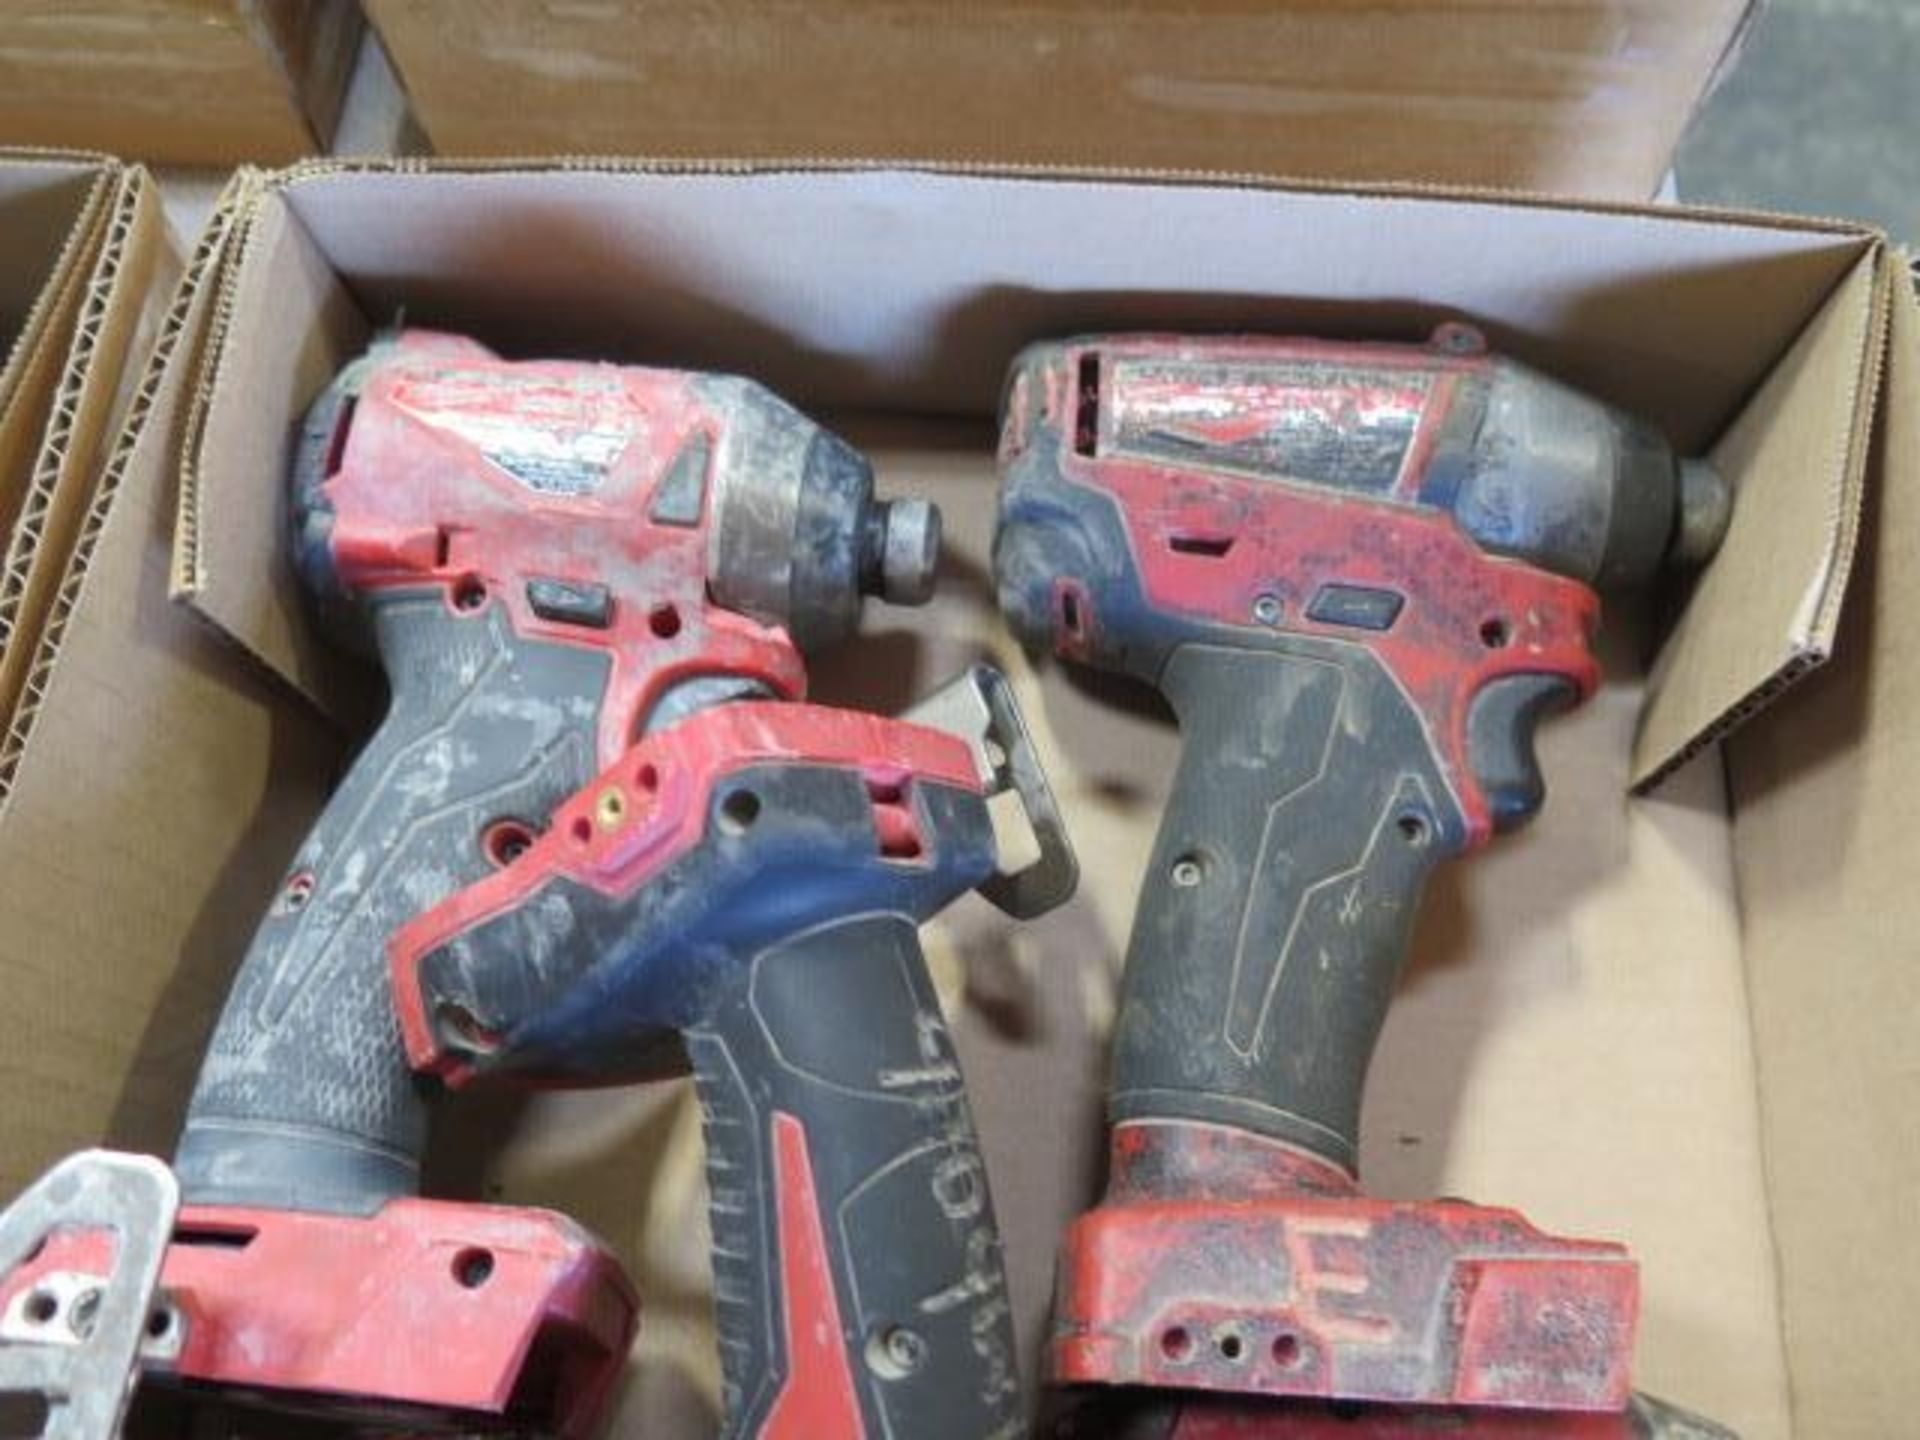 """Milwaukee 18 Volt 1/4"""" Nut Drivers (5) (SOLD AS-IS - NO WARRANTY) - Image 3 of 4"""